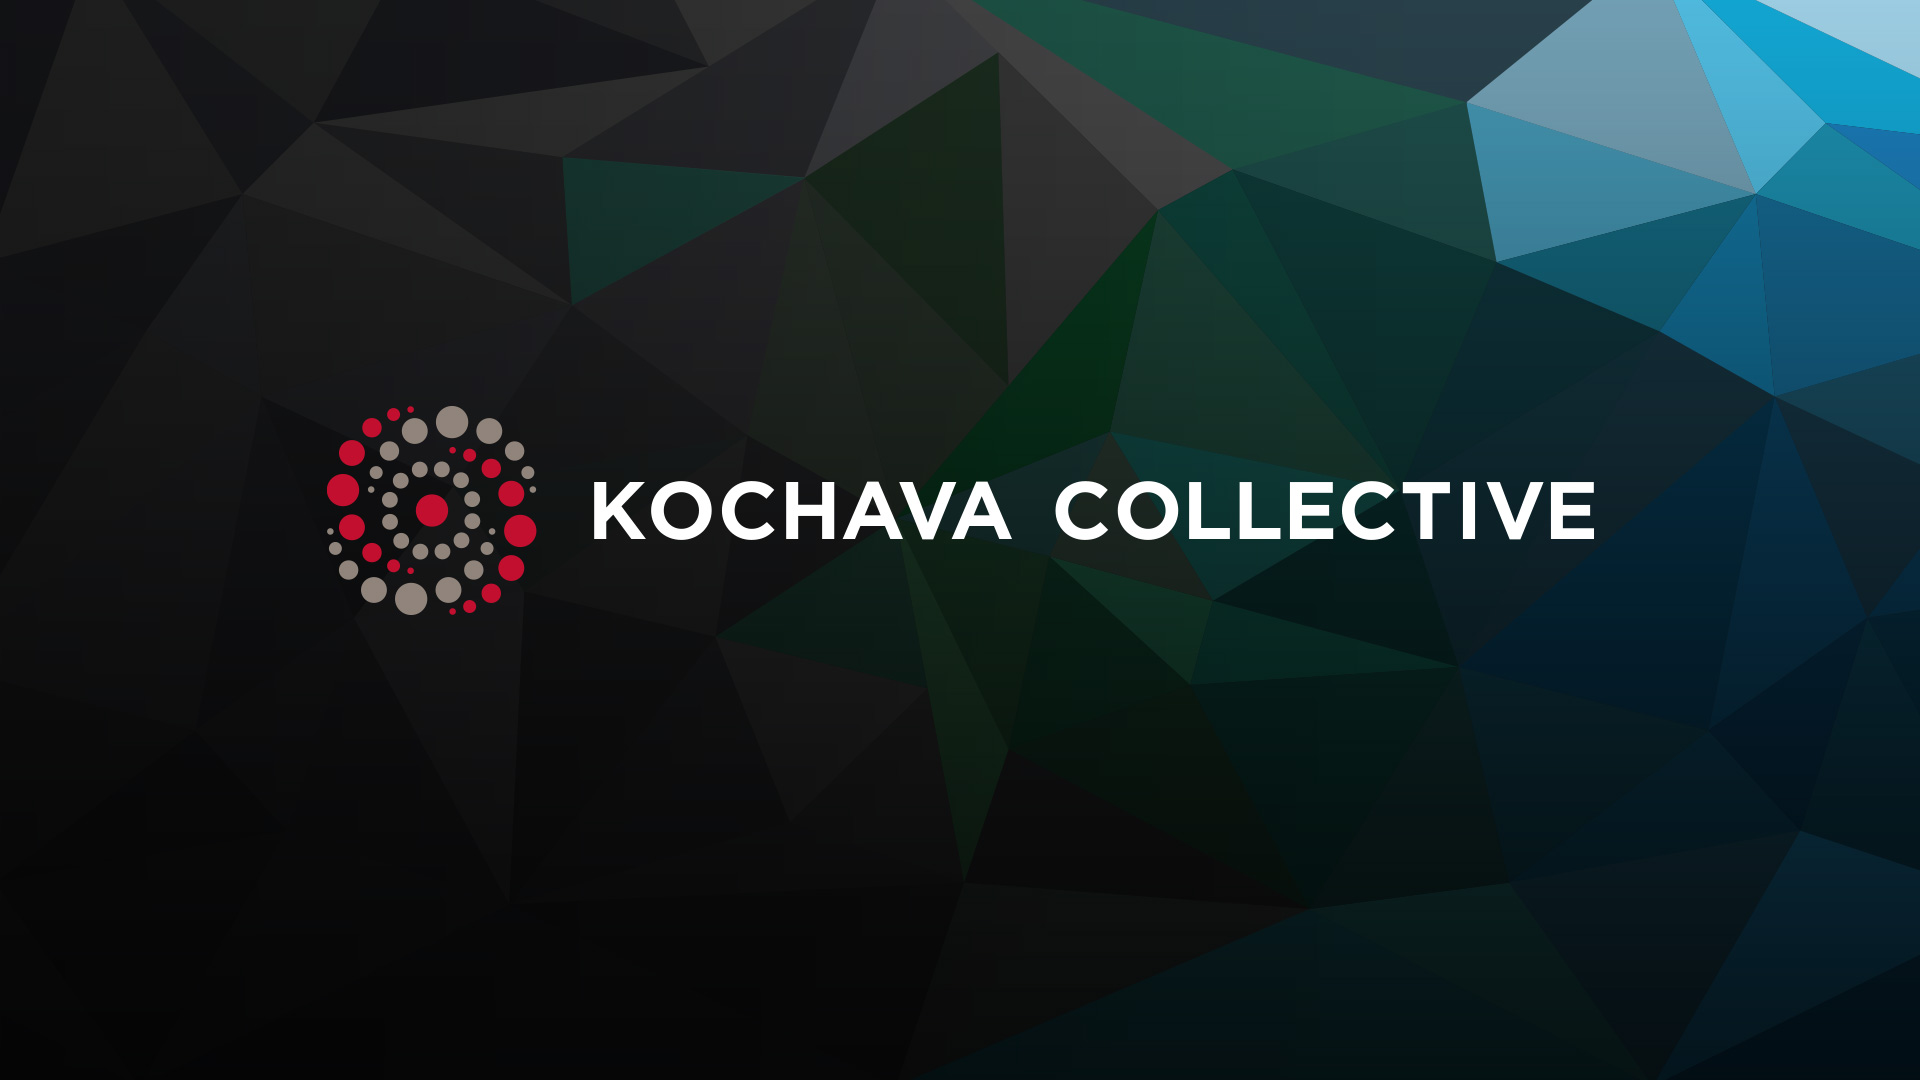 The Kochava Collective